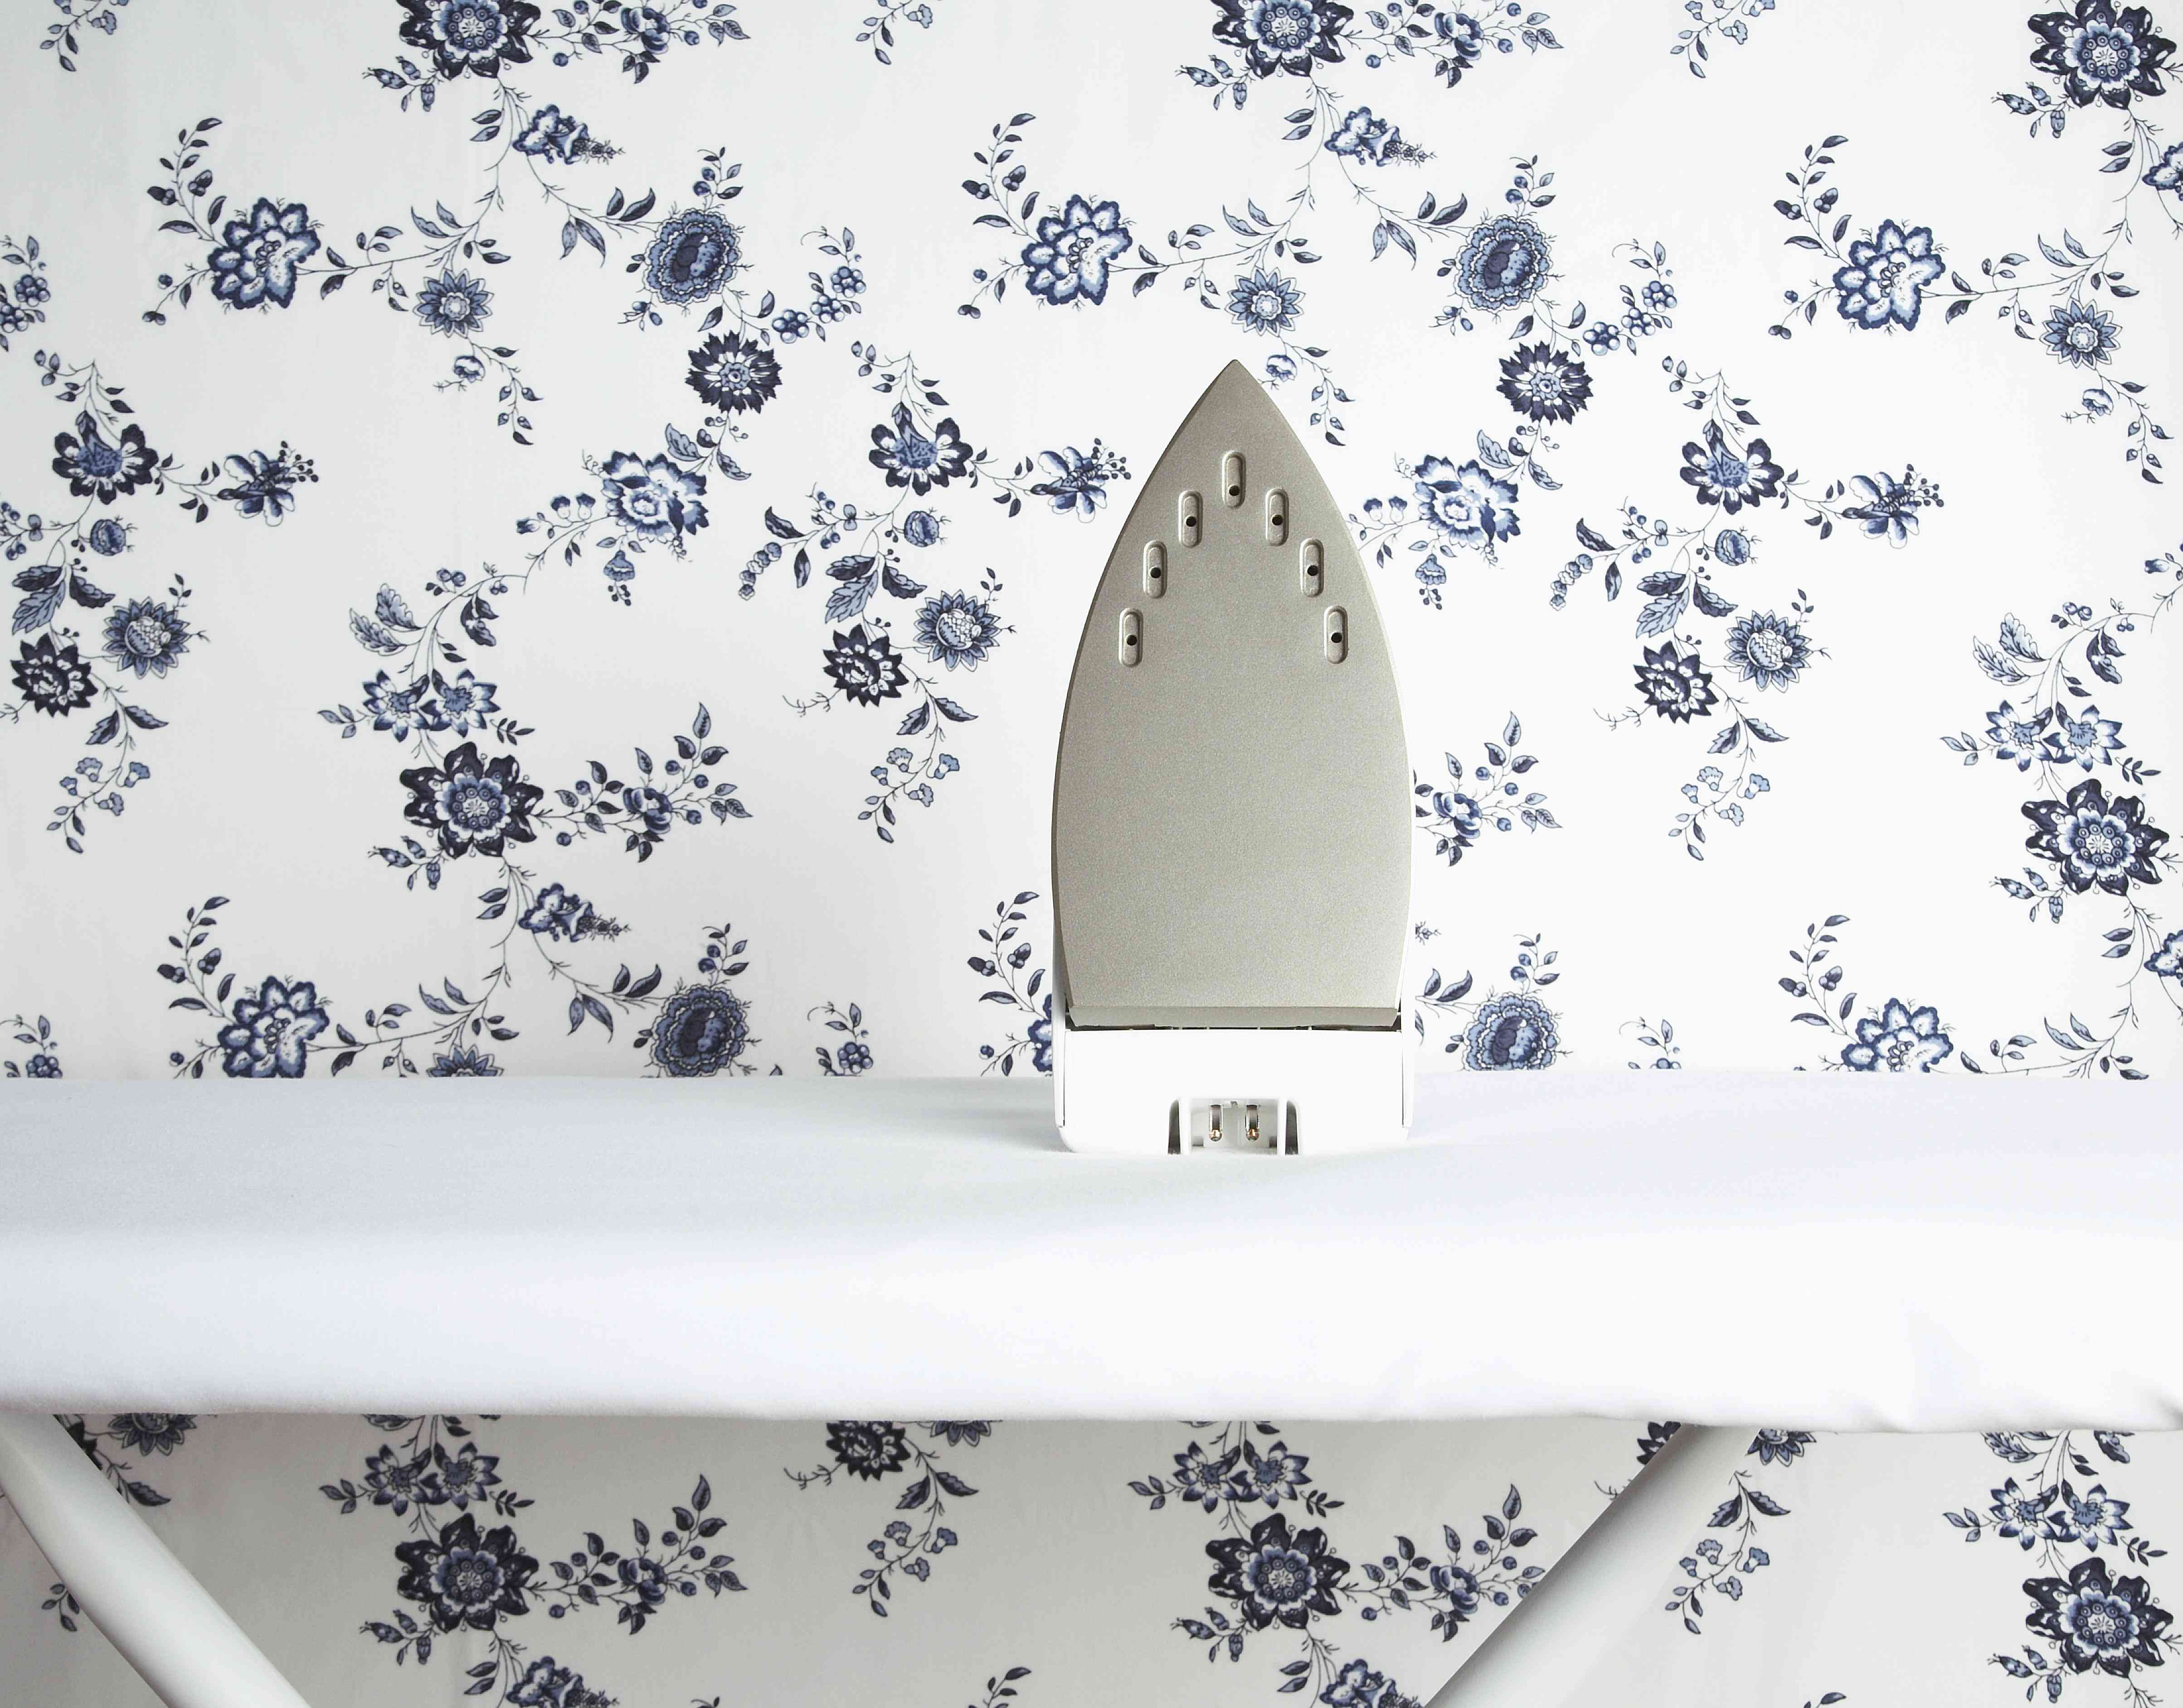 Iron on ironing board with wallpaper pattern in background